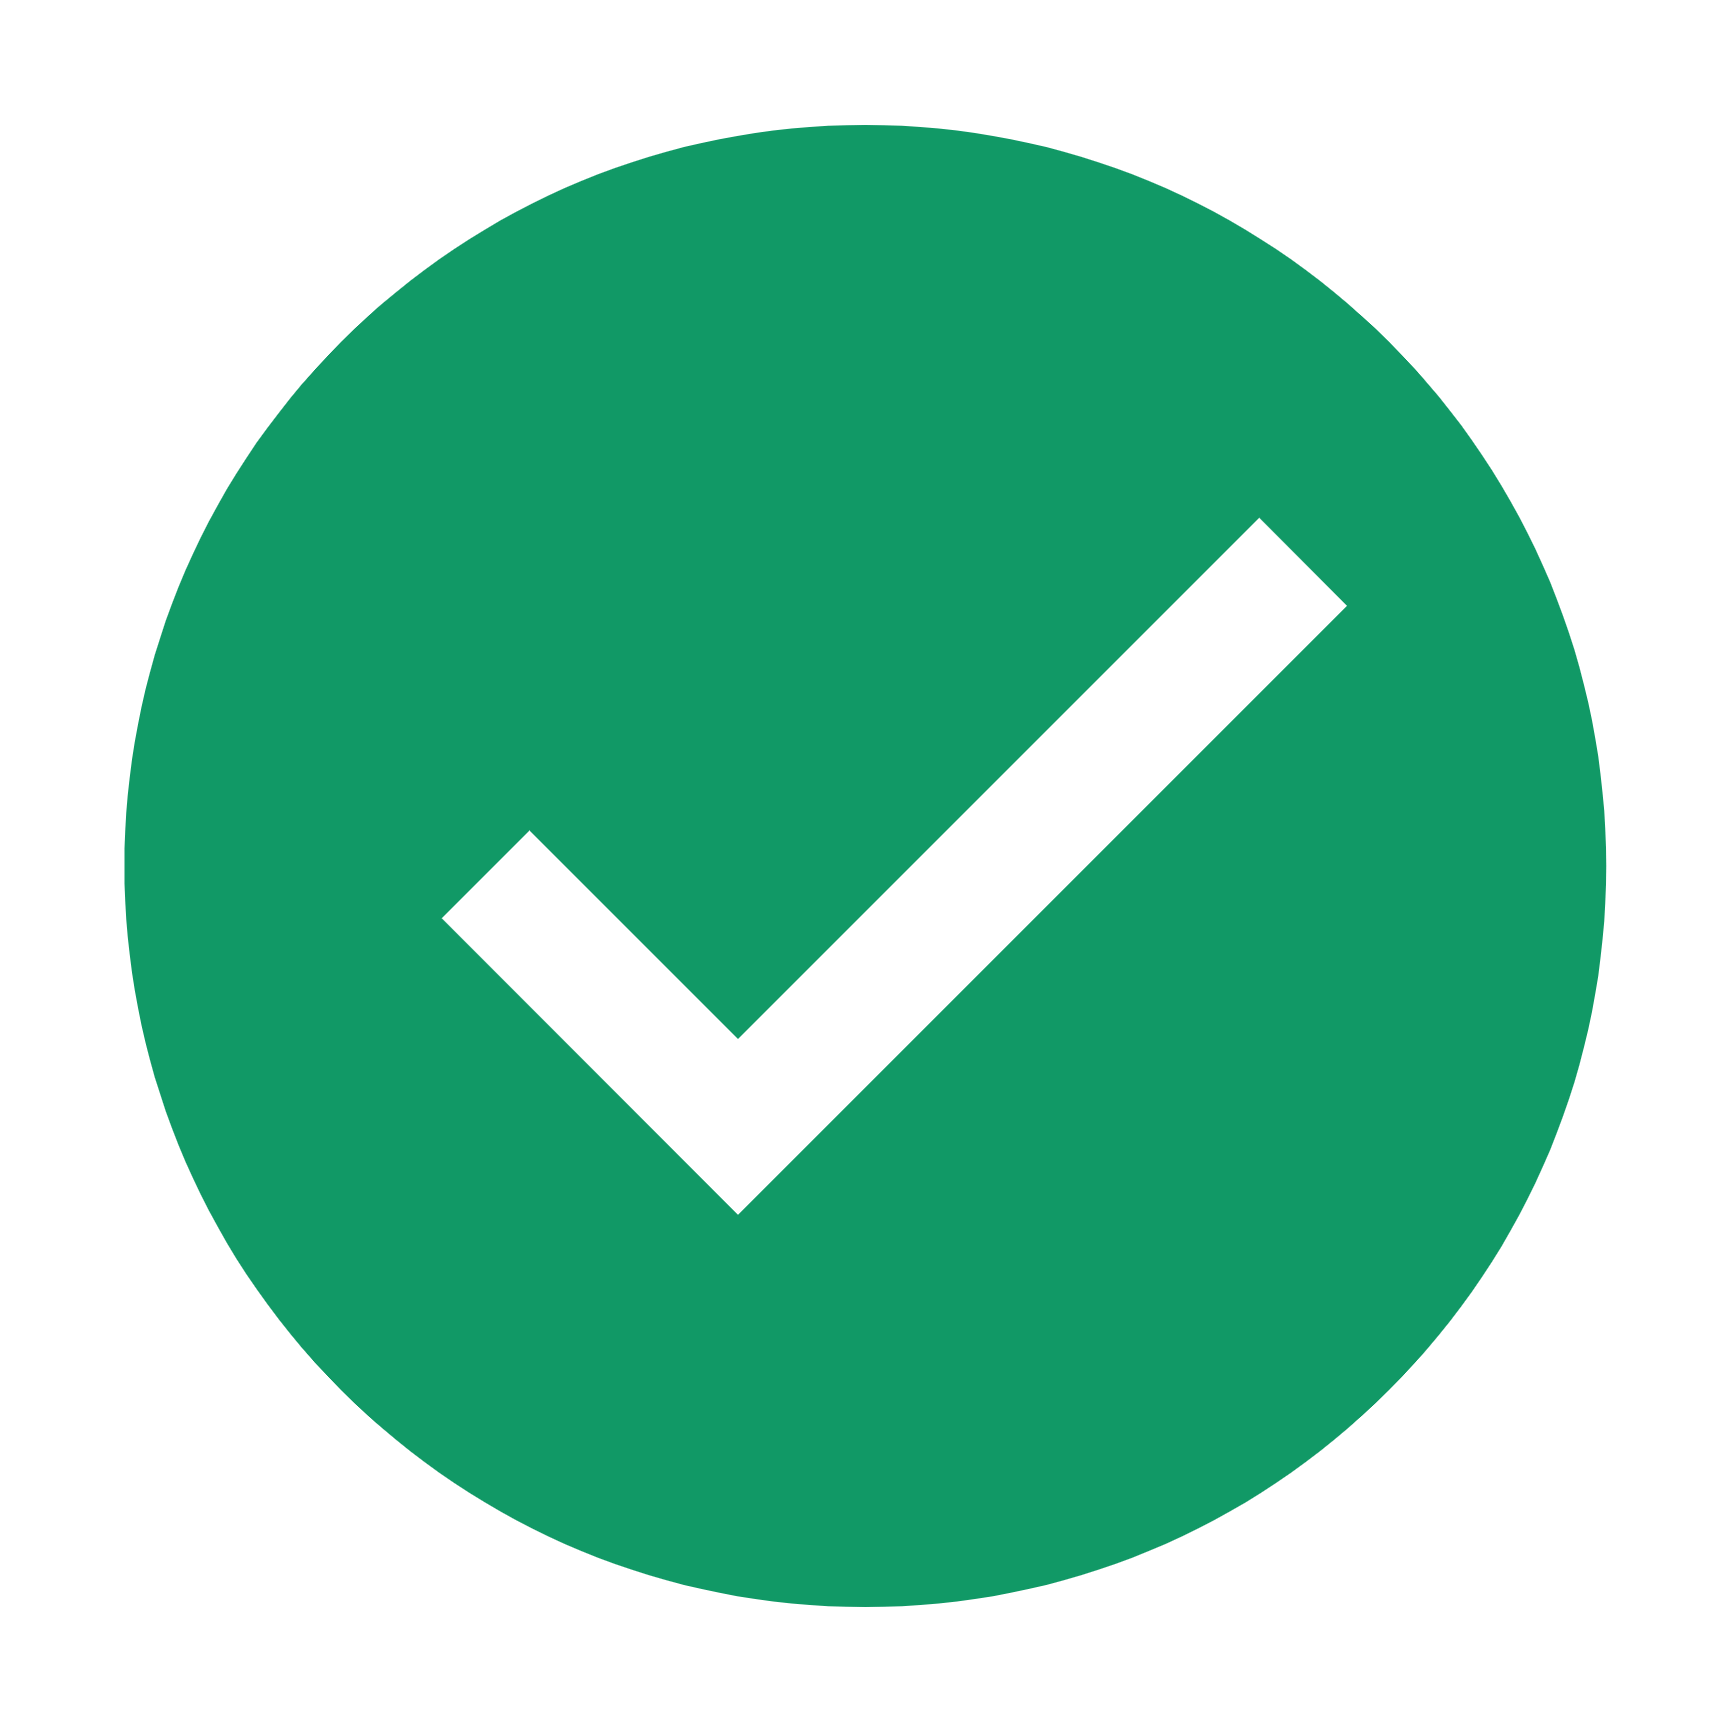 Green Checkmark Icon